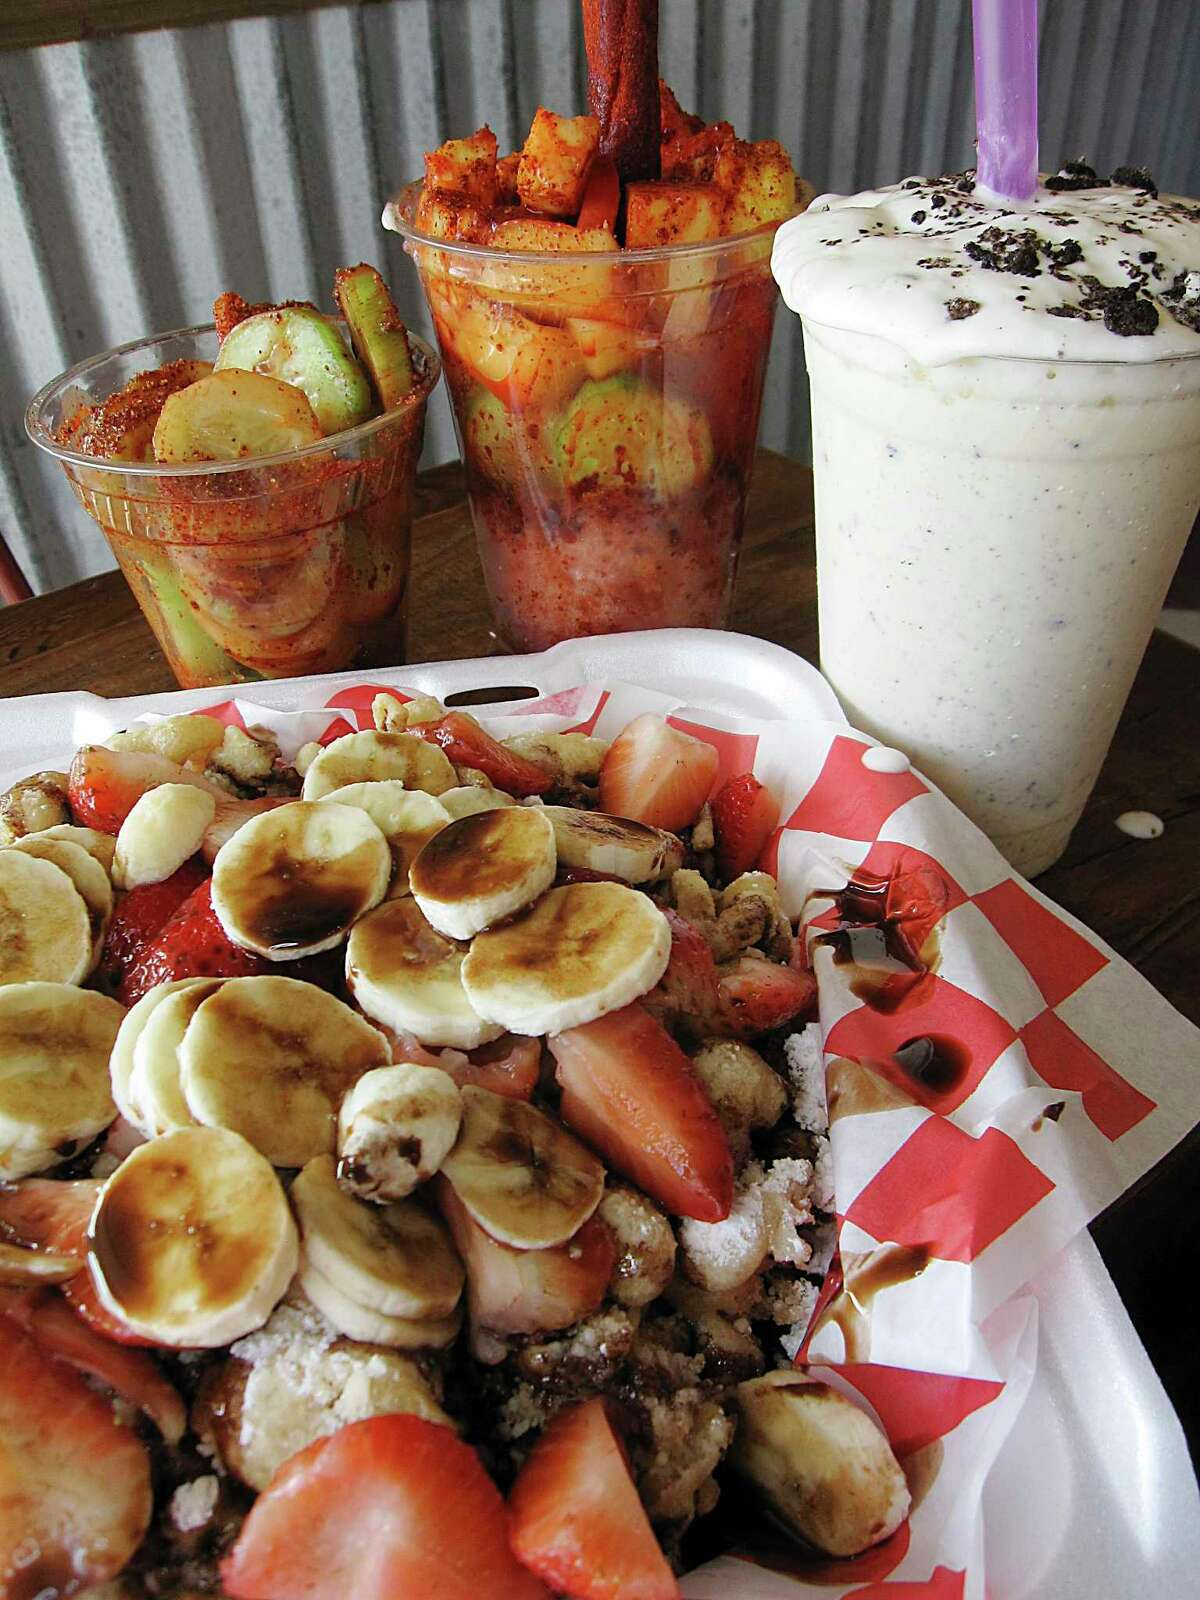 Snacks and desserts include a build-your-own funnel cake (bananas, strawberries and chocolate syrup), a cucumber cup, a Shack Fruit Cup with fruit and chamoy shaved ice and an Oreo shake at The Shack.